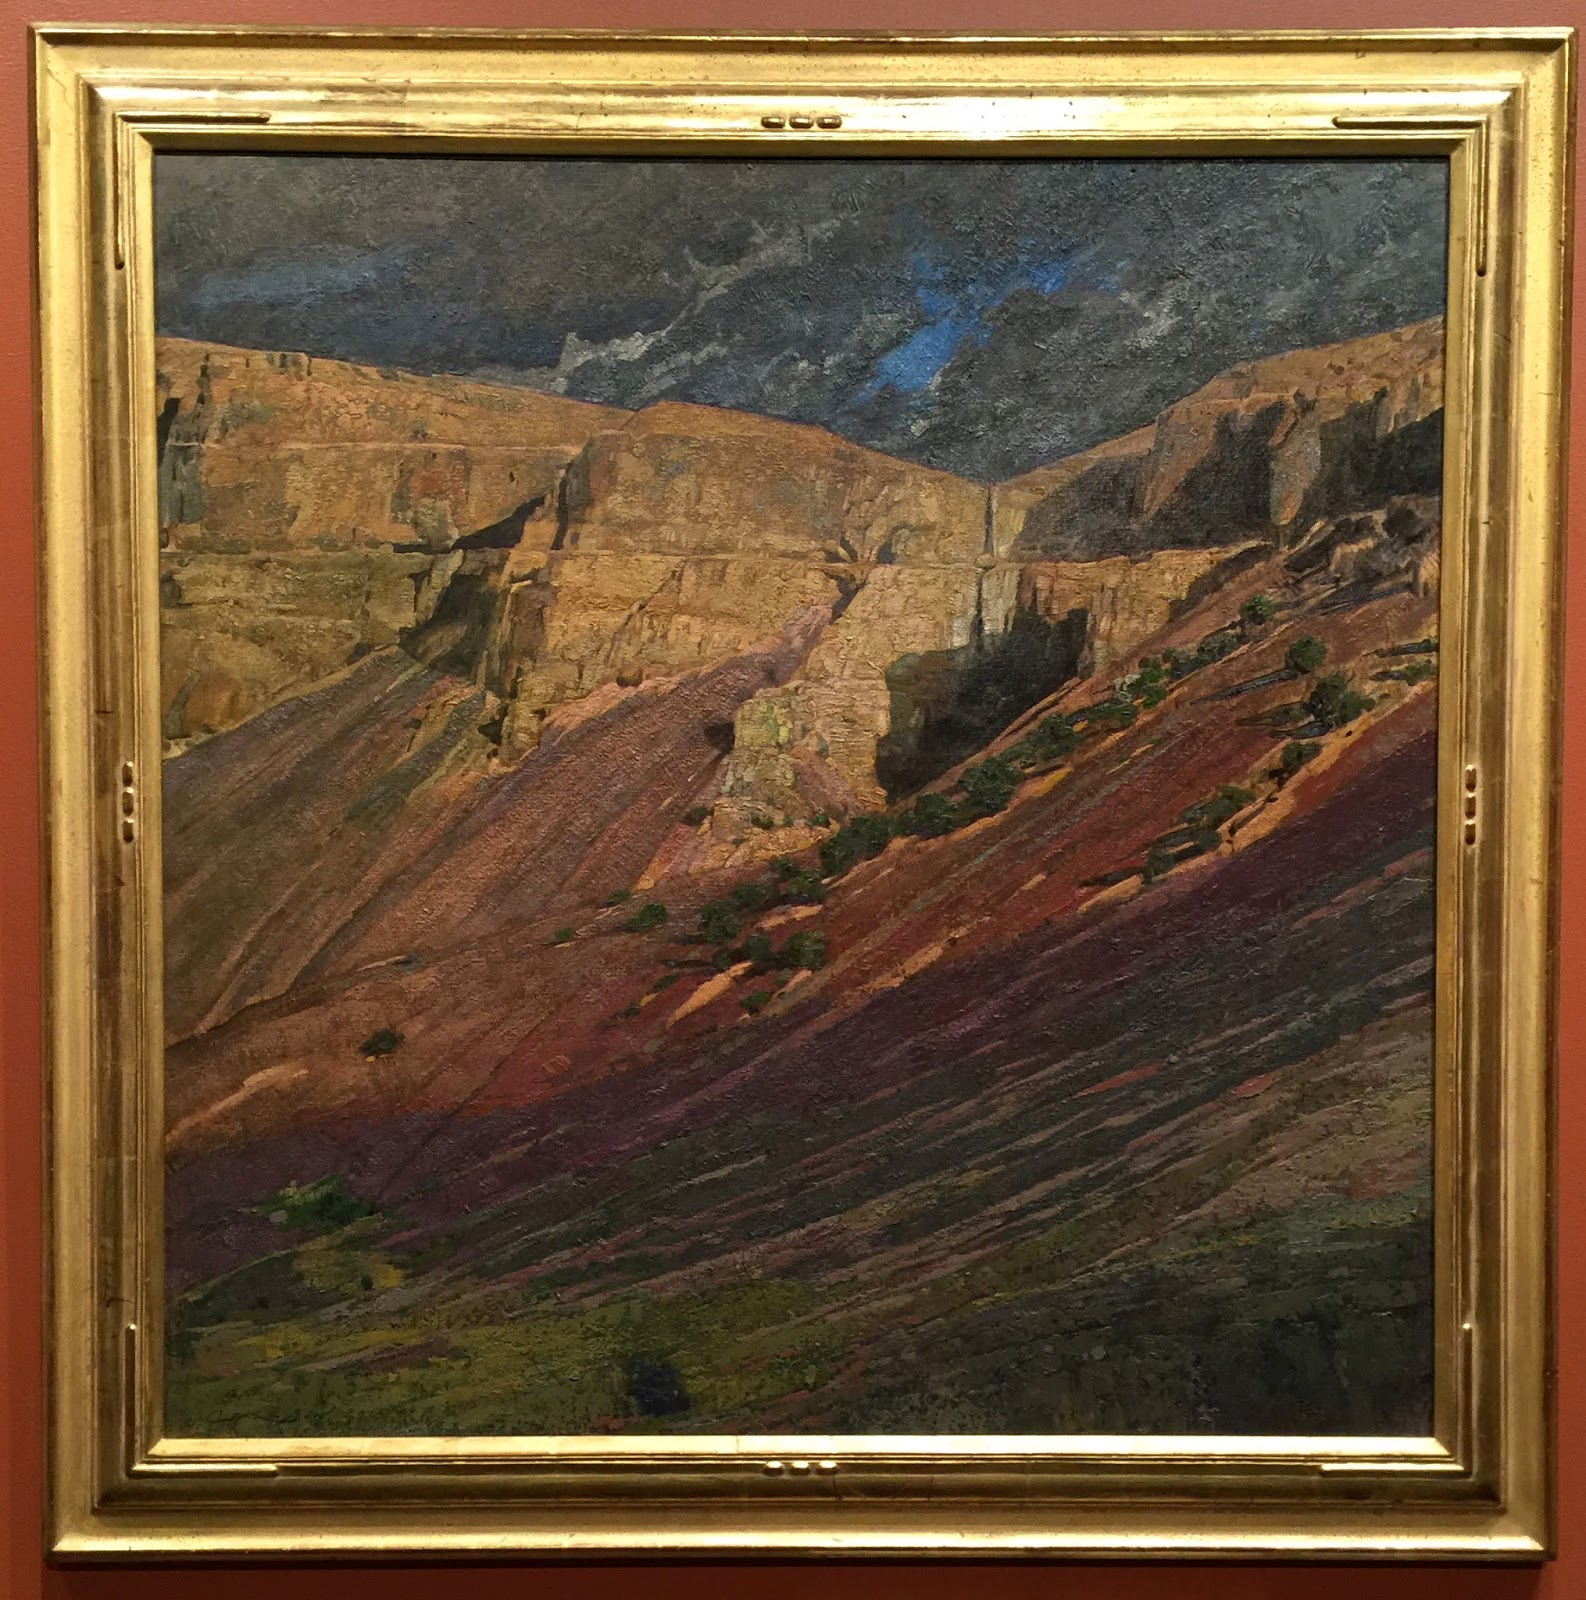 autry museum of western heritage The autrey museum of western heritage's on gold mountain:  on gold mountain is rooted in the autry museumís commitment to explore diverse communities that have.